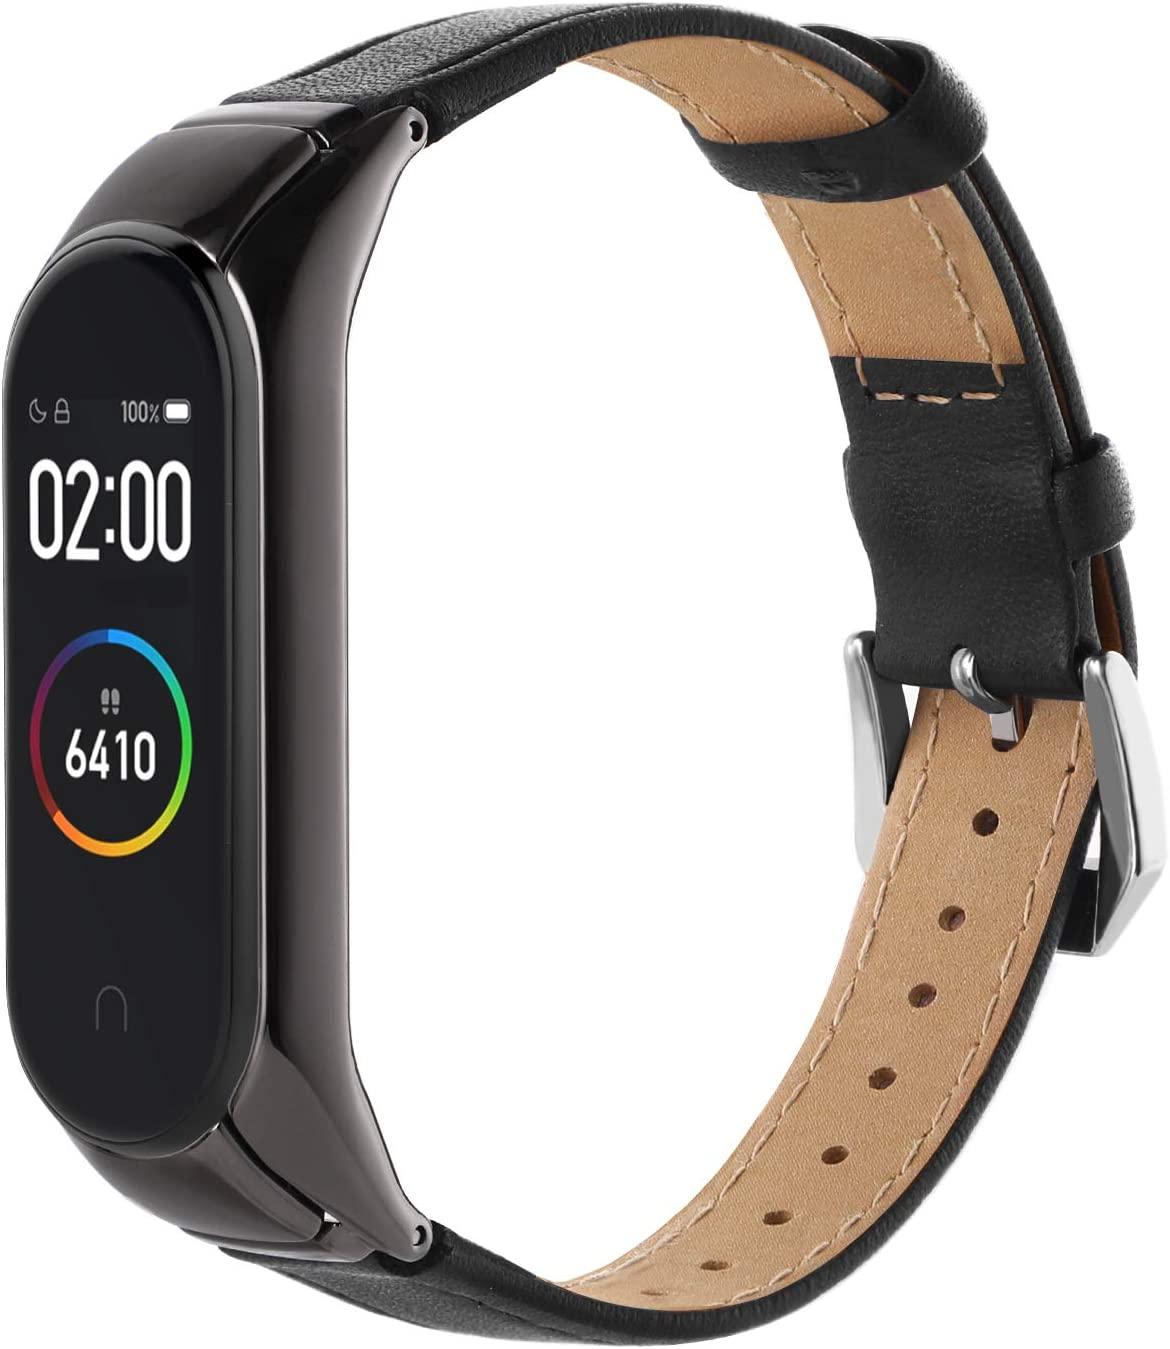 Hianjoo Correa Compatible con Xiaomi Mi Band 4, Pulsera Cuero con Metal Case Banda Repuesto Fitness Sports Correas Brazalete Extensibles Leather Band Compatible con Mi Band 4, Mejorar, Negro